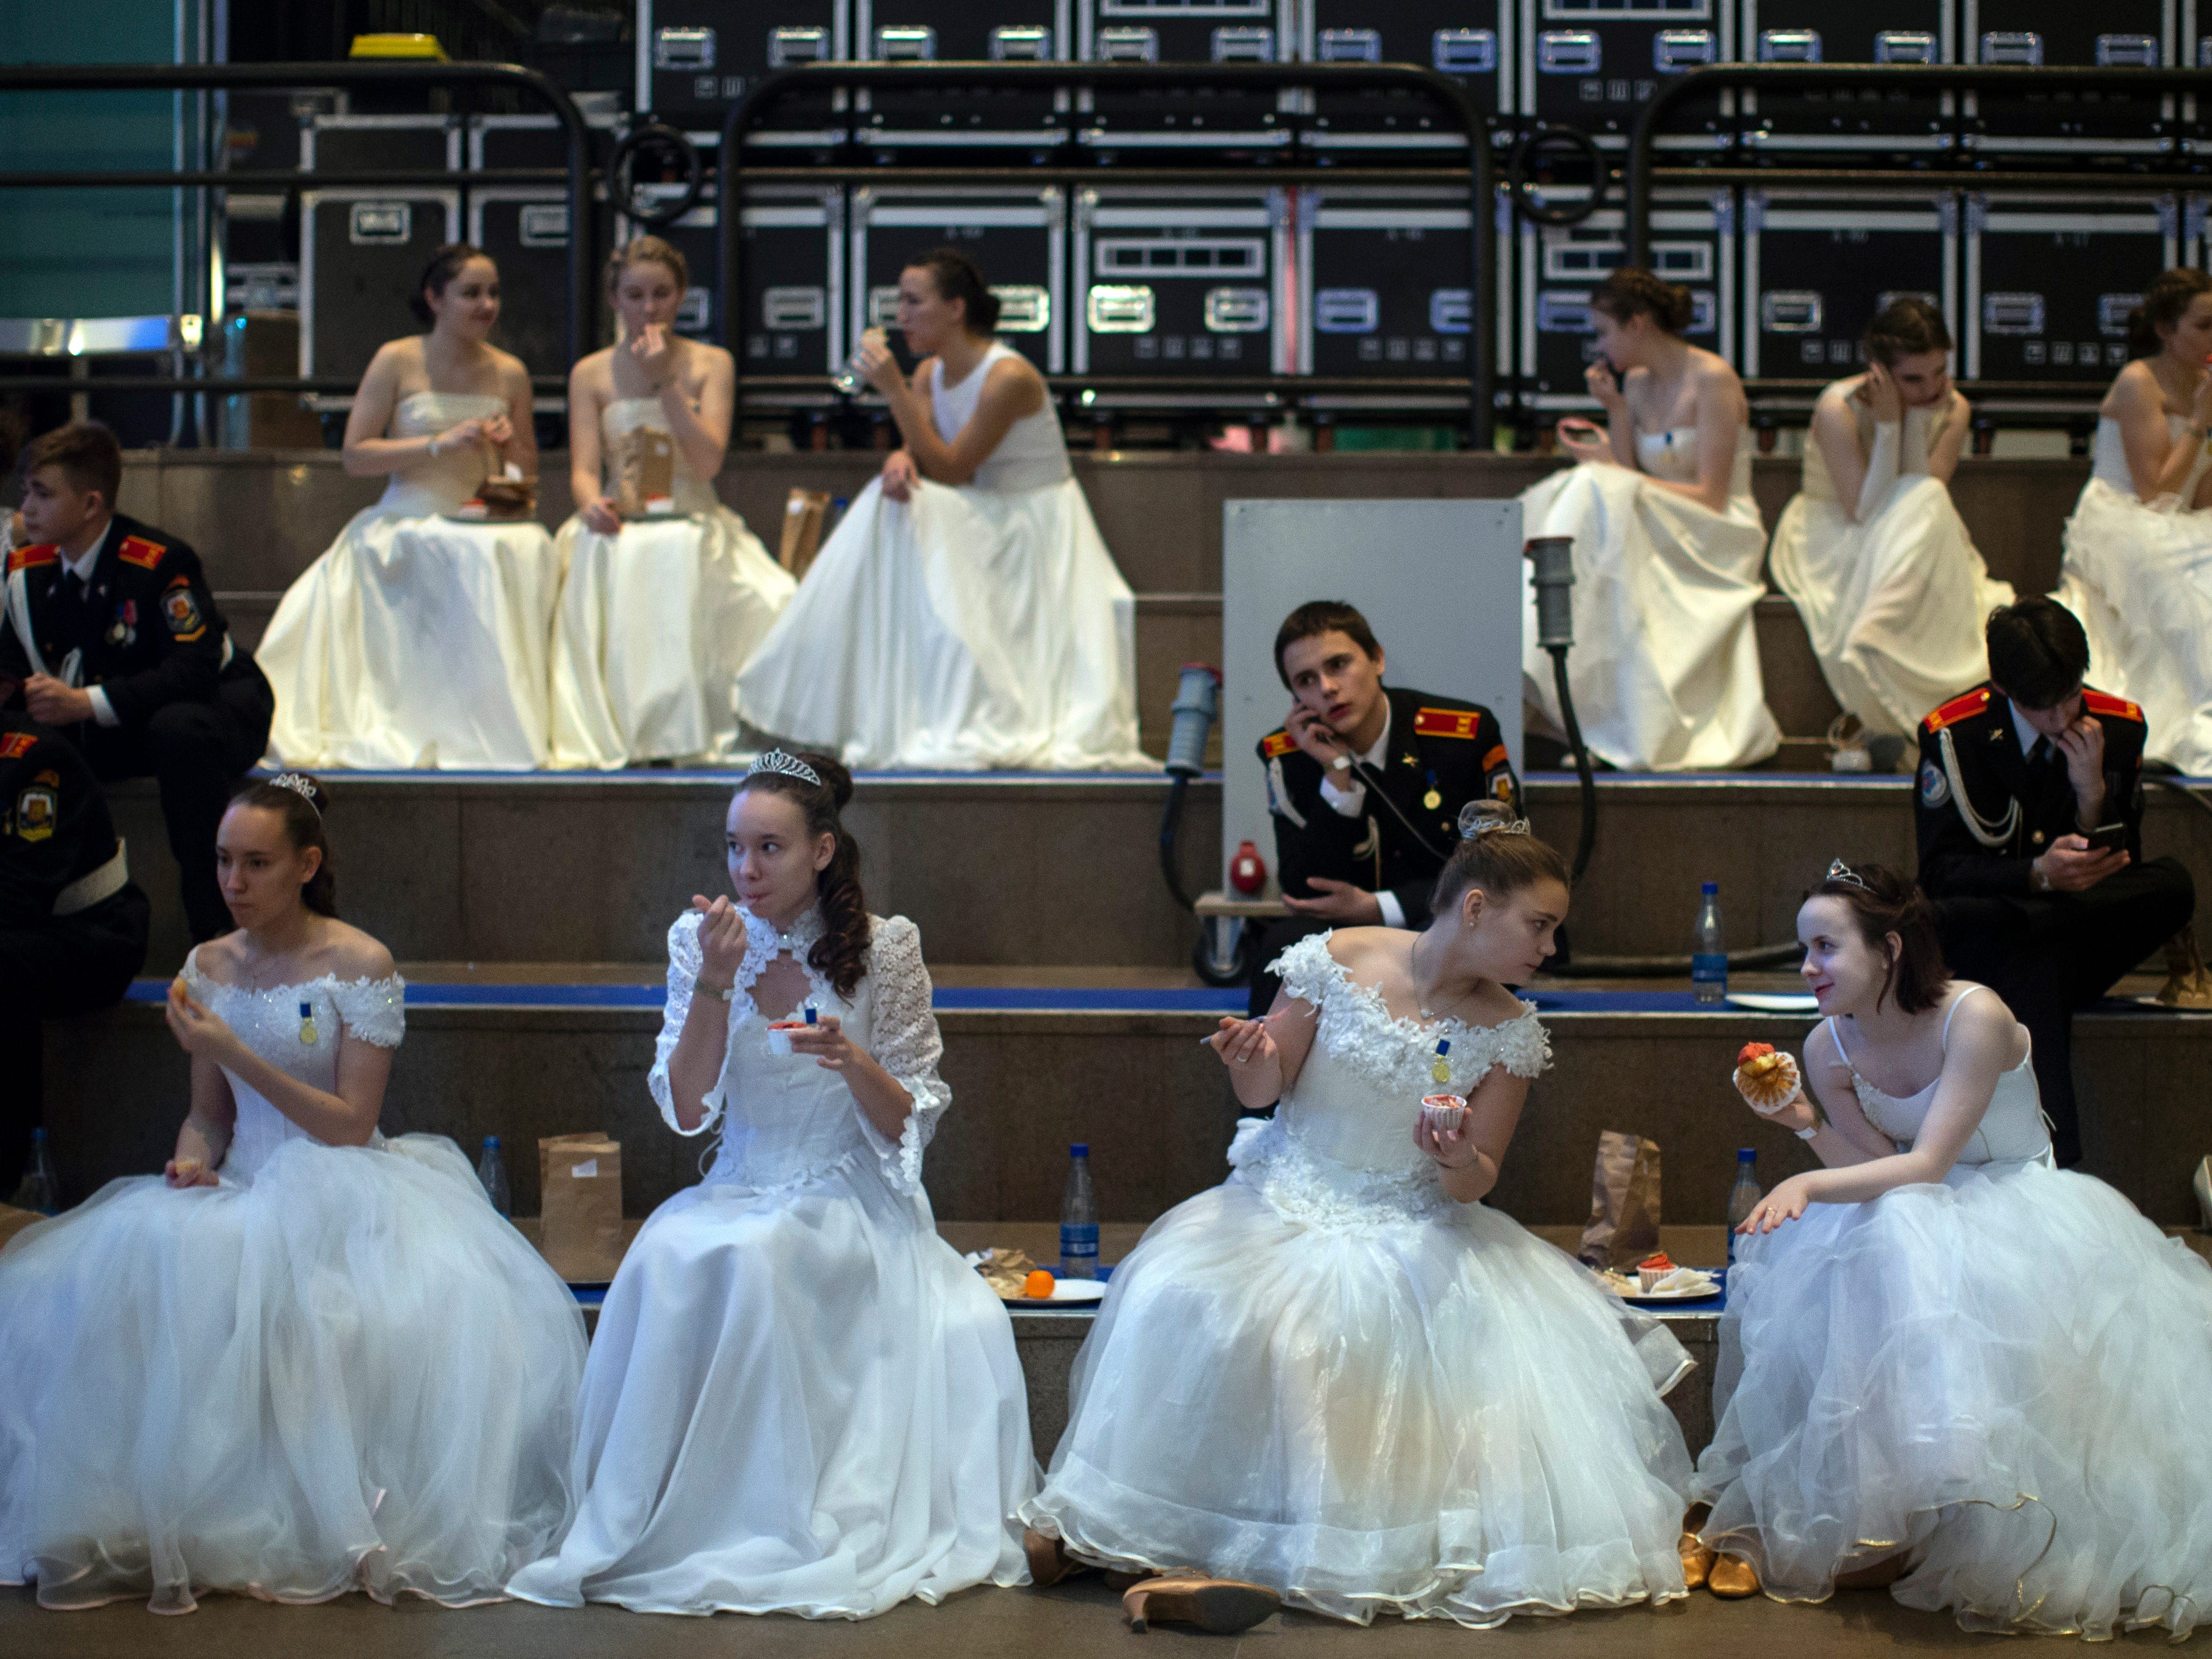 Students sit backstage during an annual ball in Moscow, Russia, Tuesday, Dec. 11, 2018. In the revival of a czarist tradition, more than 1,000 students both from military and general schools travelled from all over Russia to Moscow to take part in the annual ball.